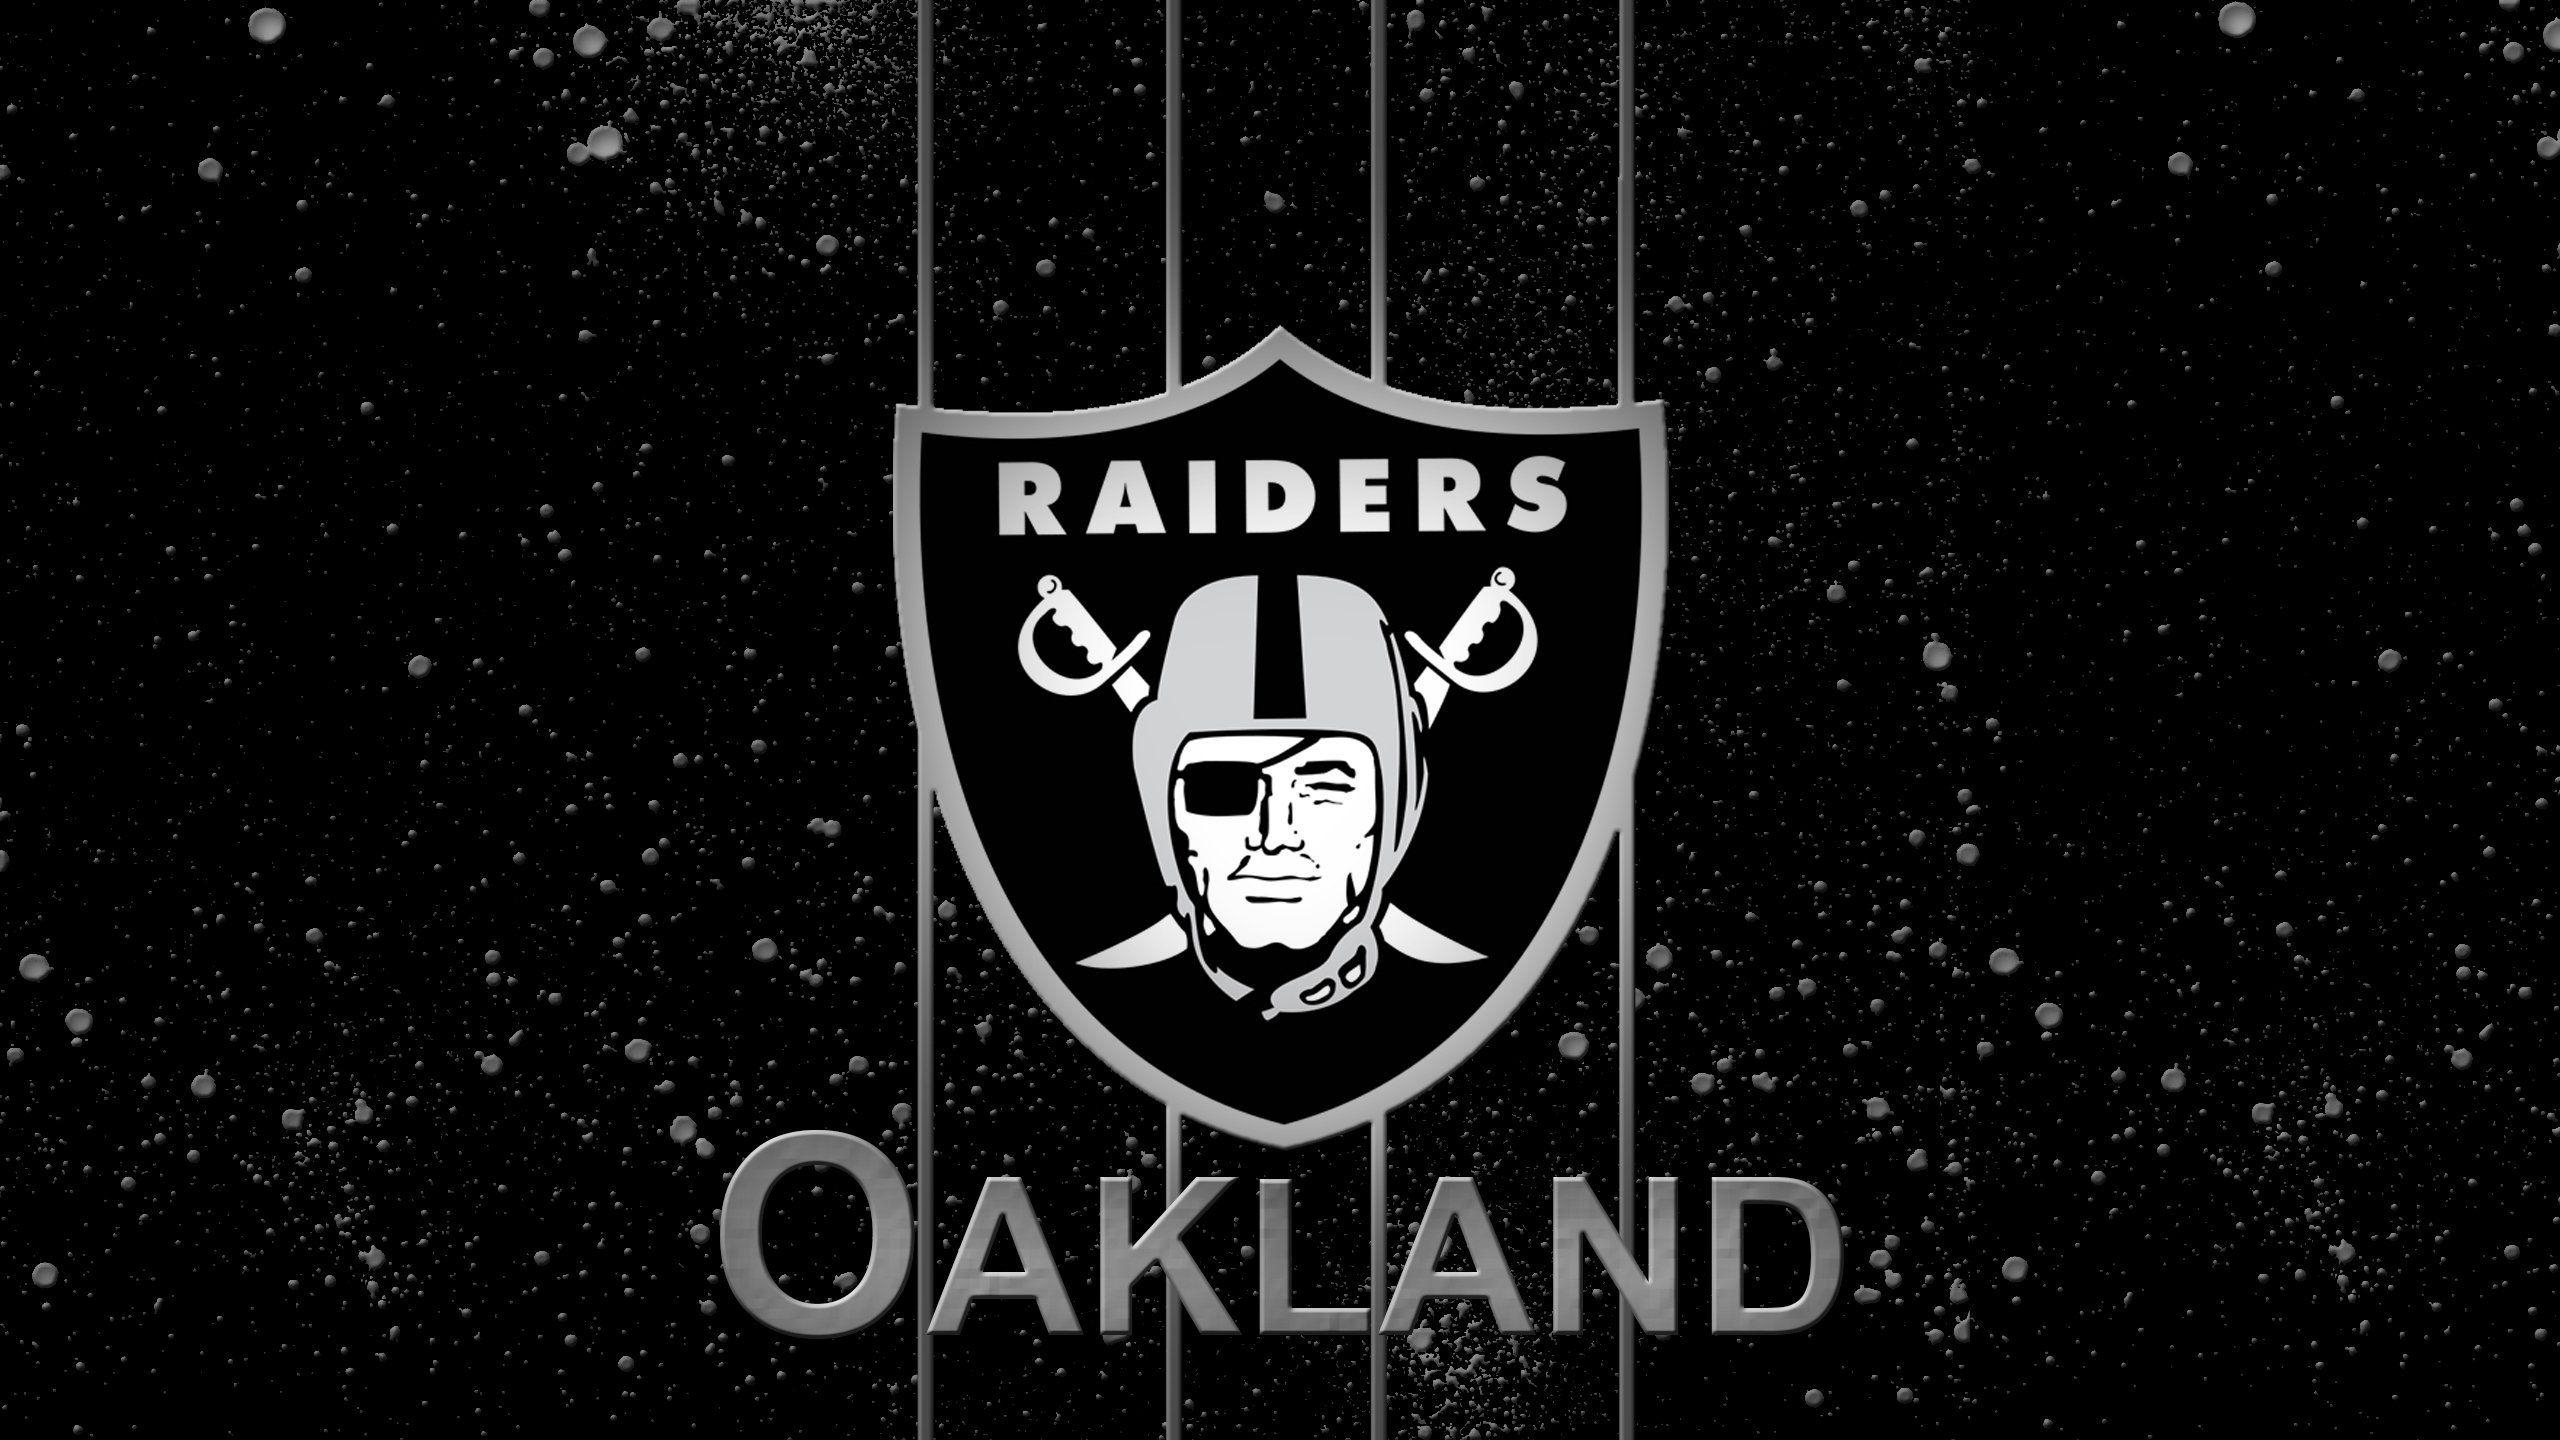 oakland raiders wallpapers - wallpaper cave